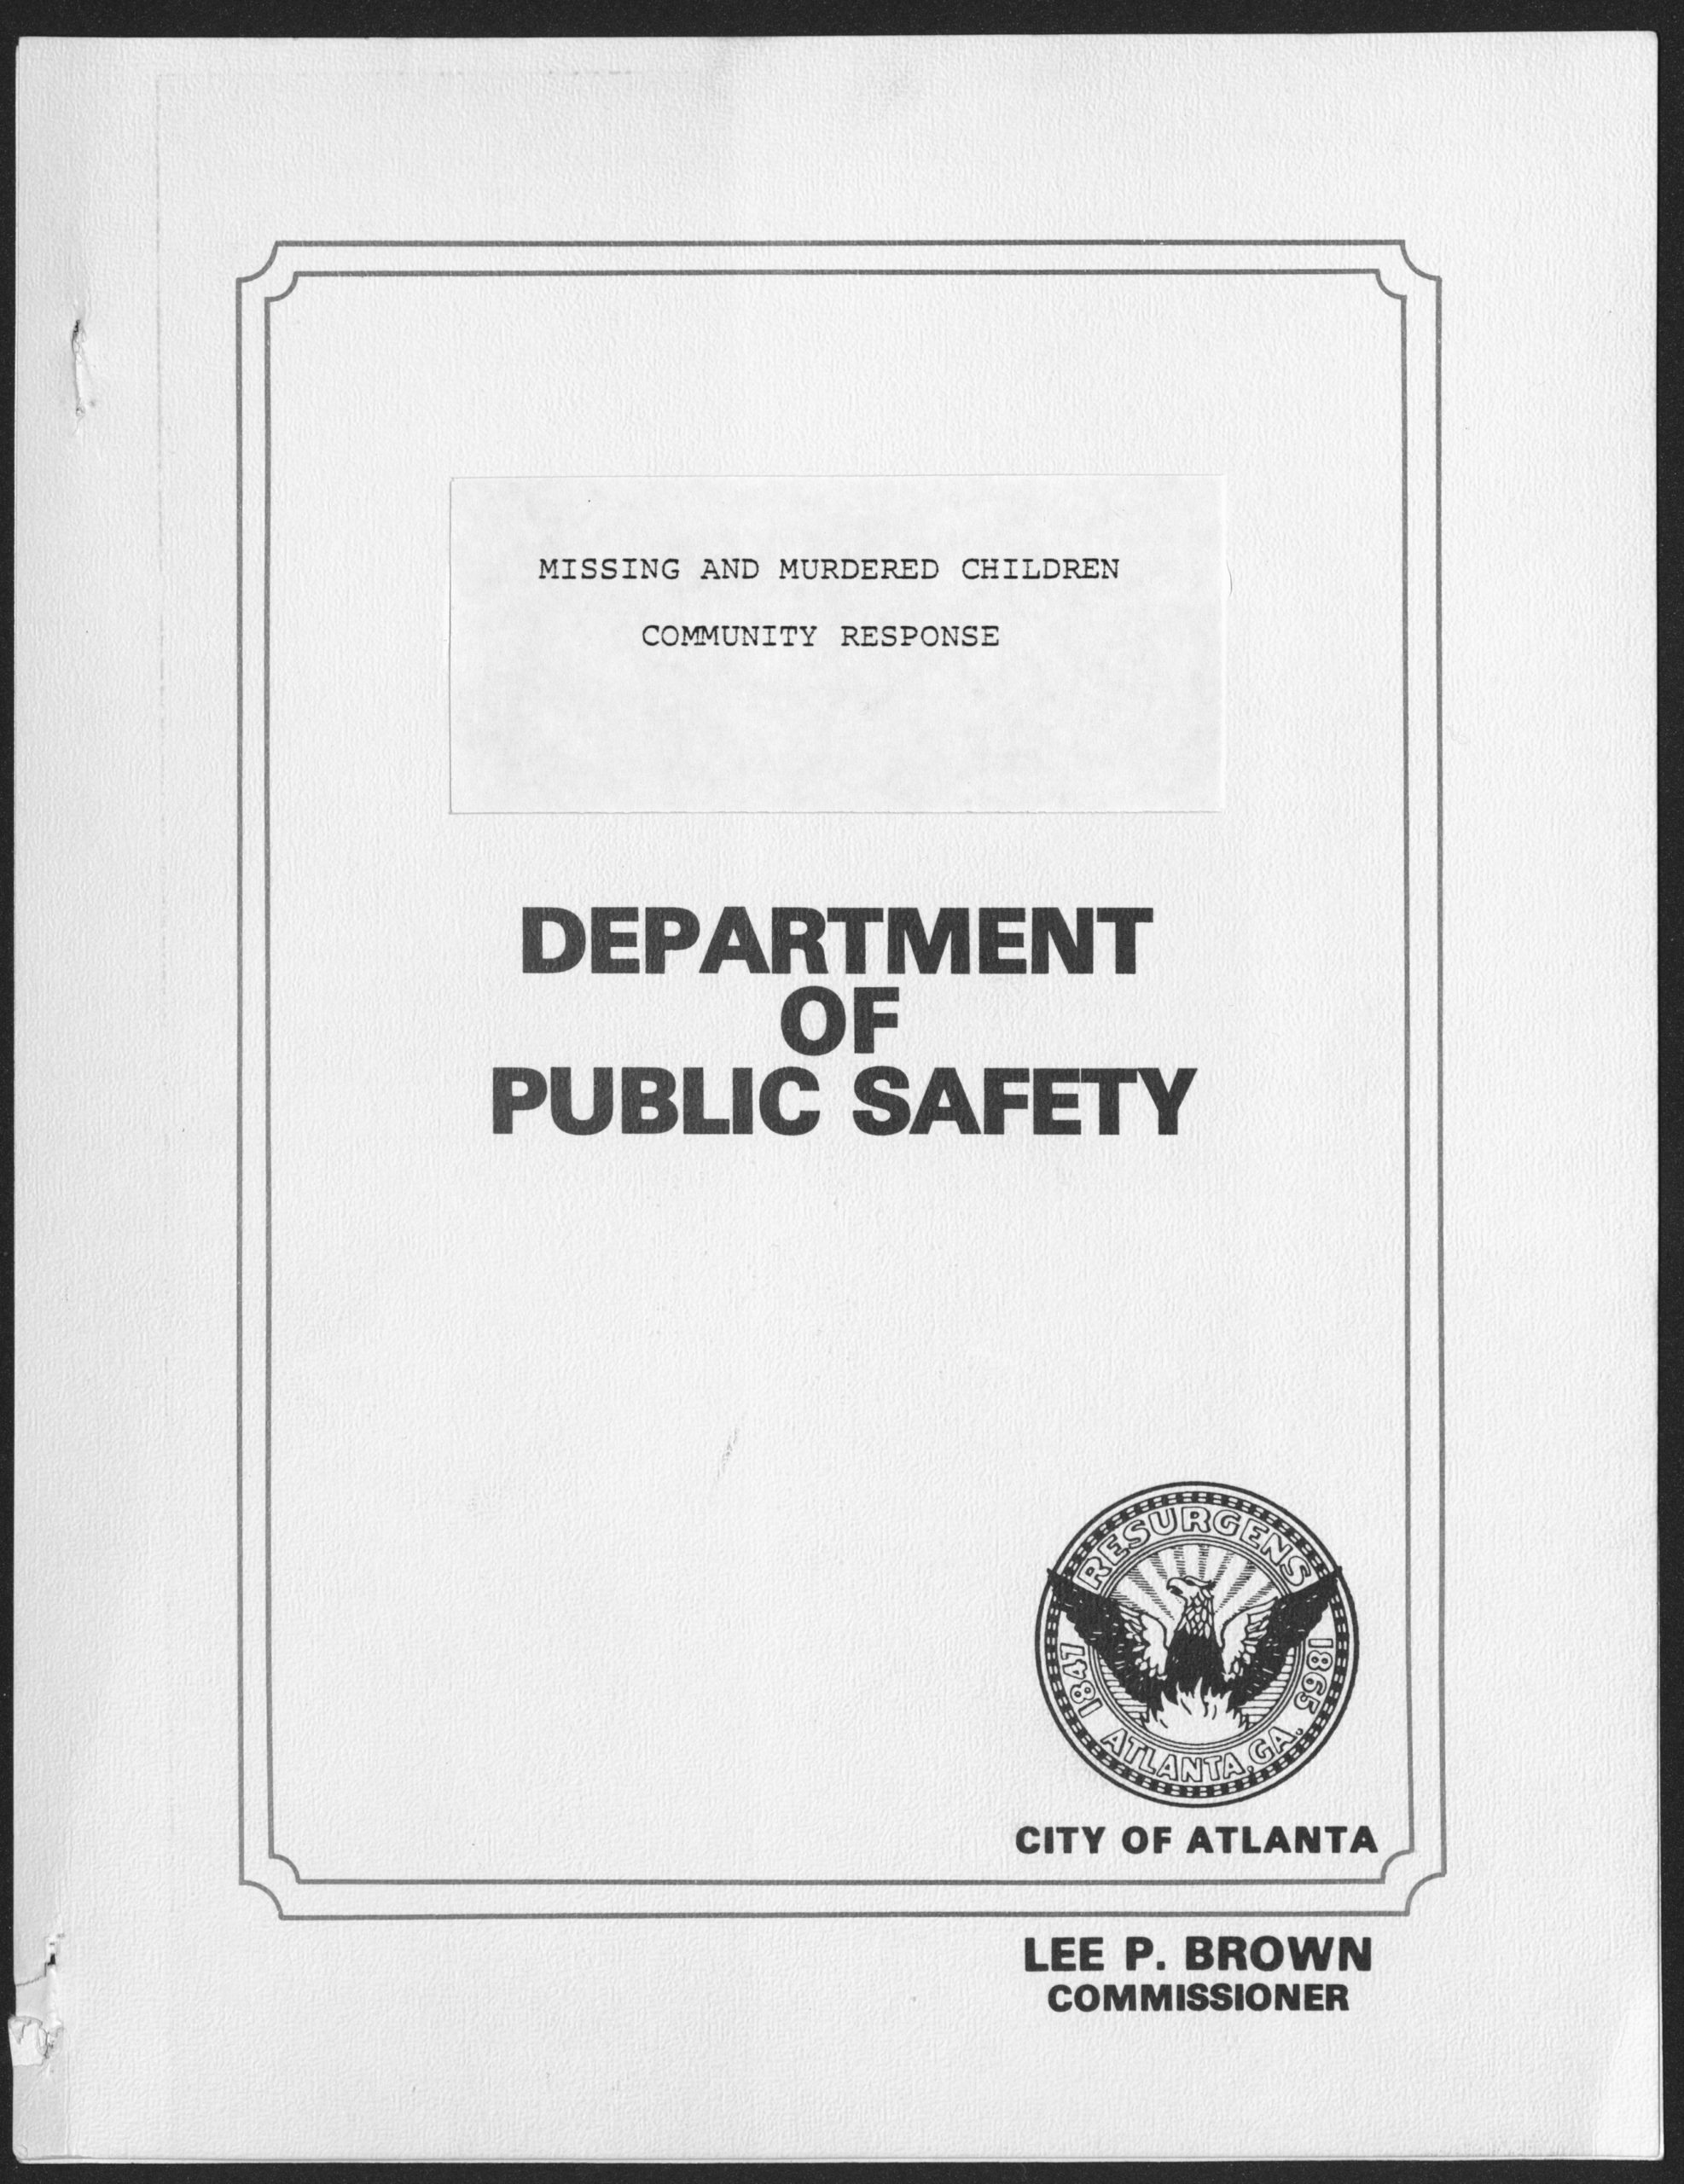 Missing and Murdered Children Community Response, March 10, 1981 City of Atlanta Department of Public Safety Maynard Jackson mayoral administrative records